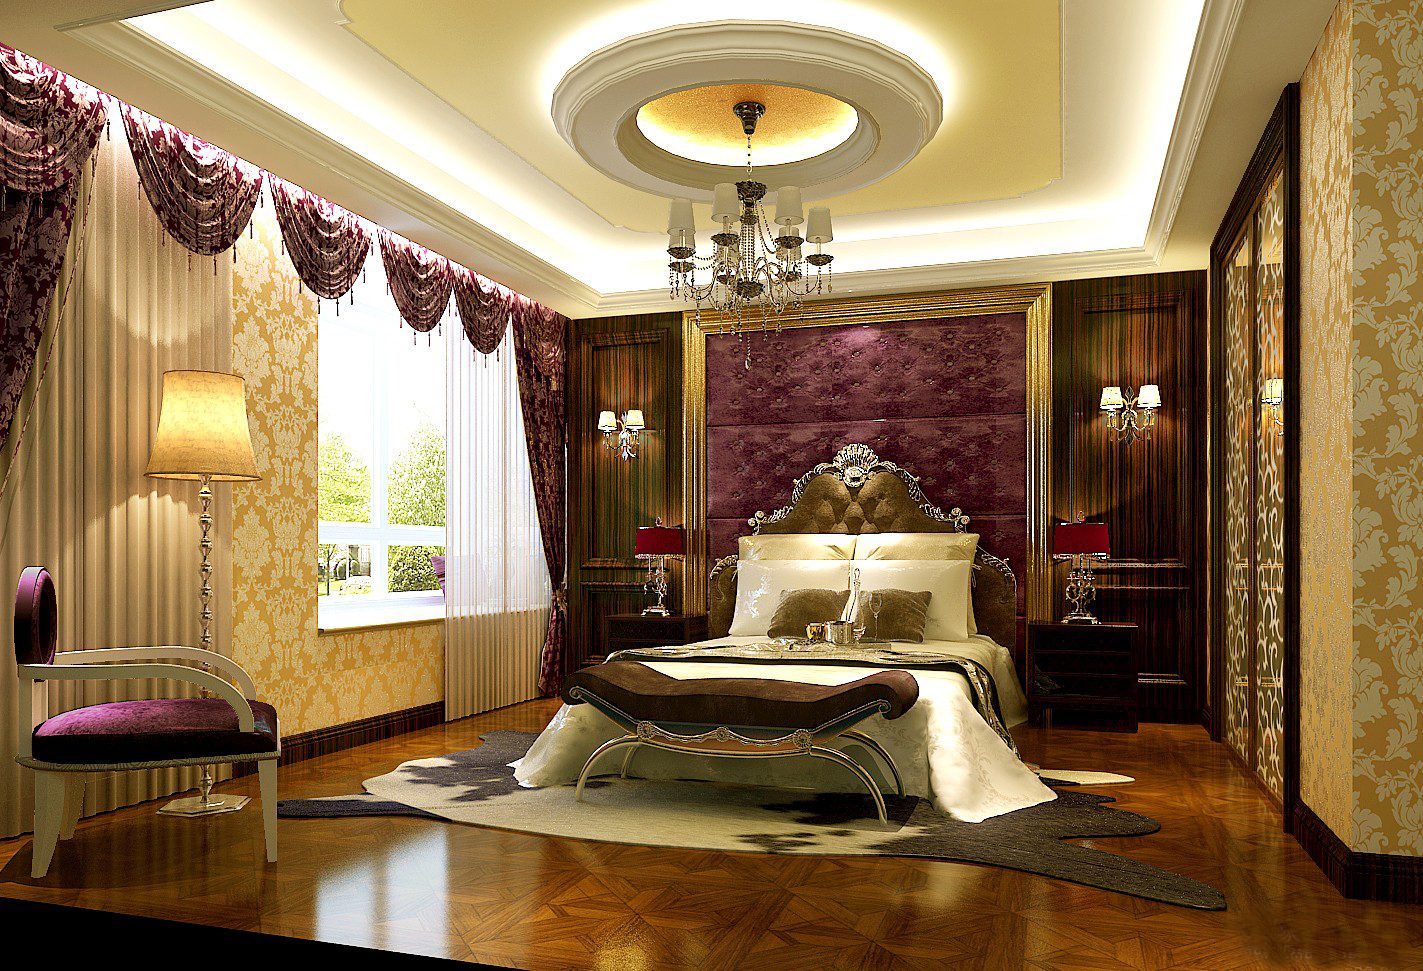 25 Latest False Designs For Living Room Bed Room: in room designs